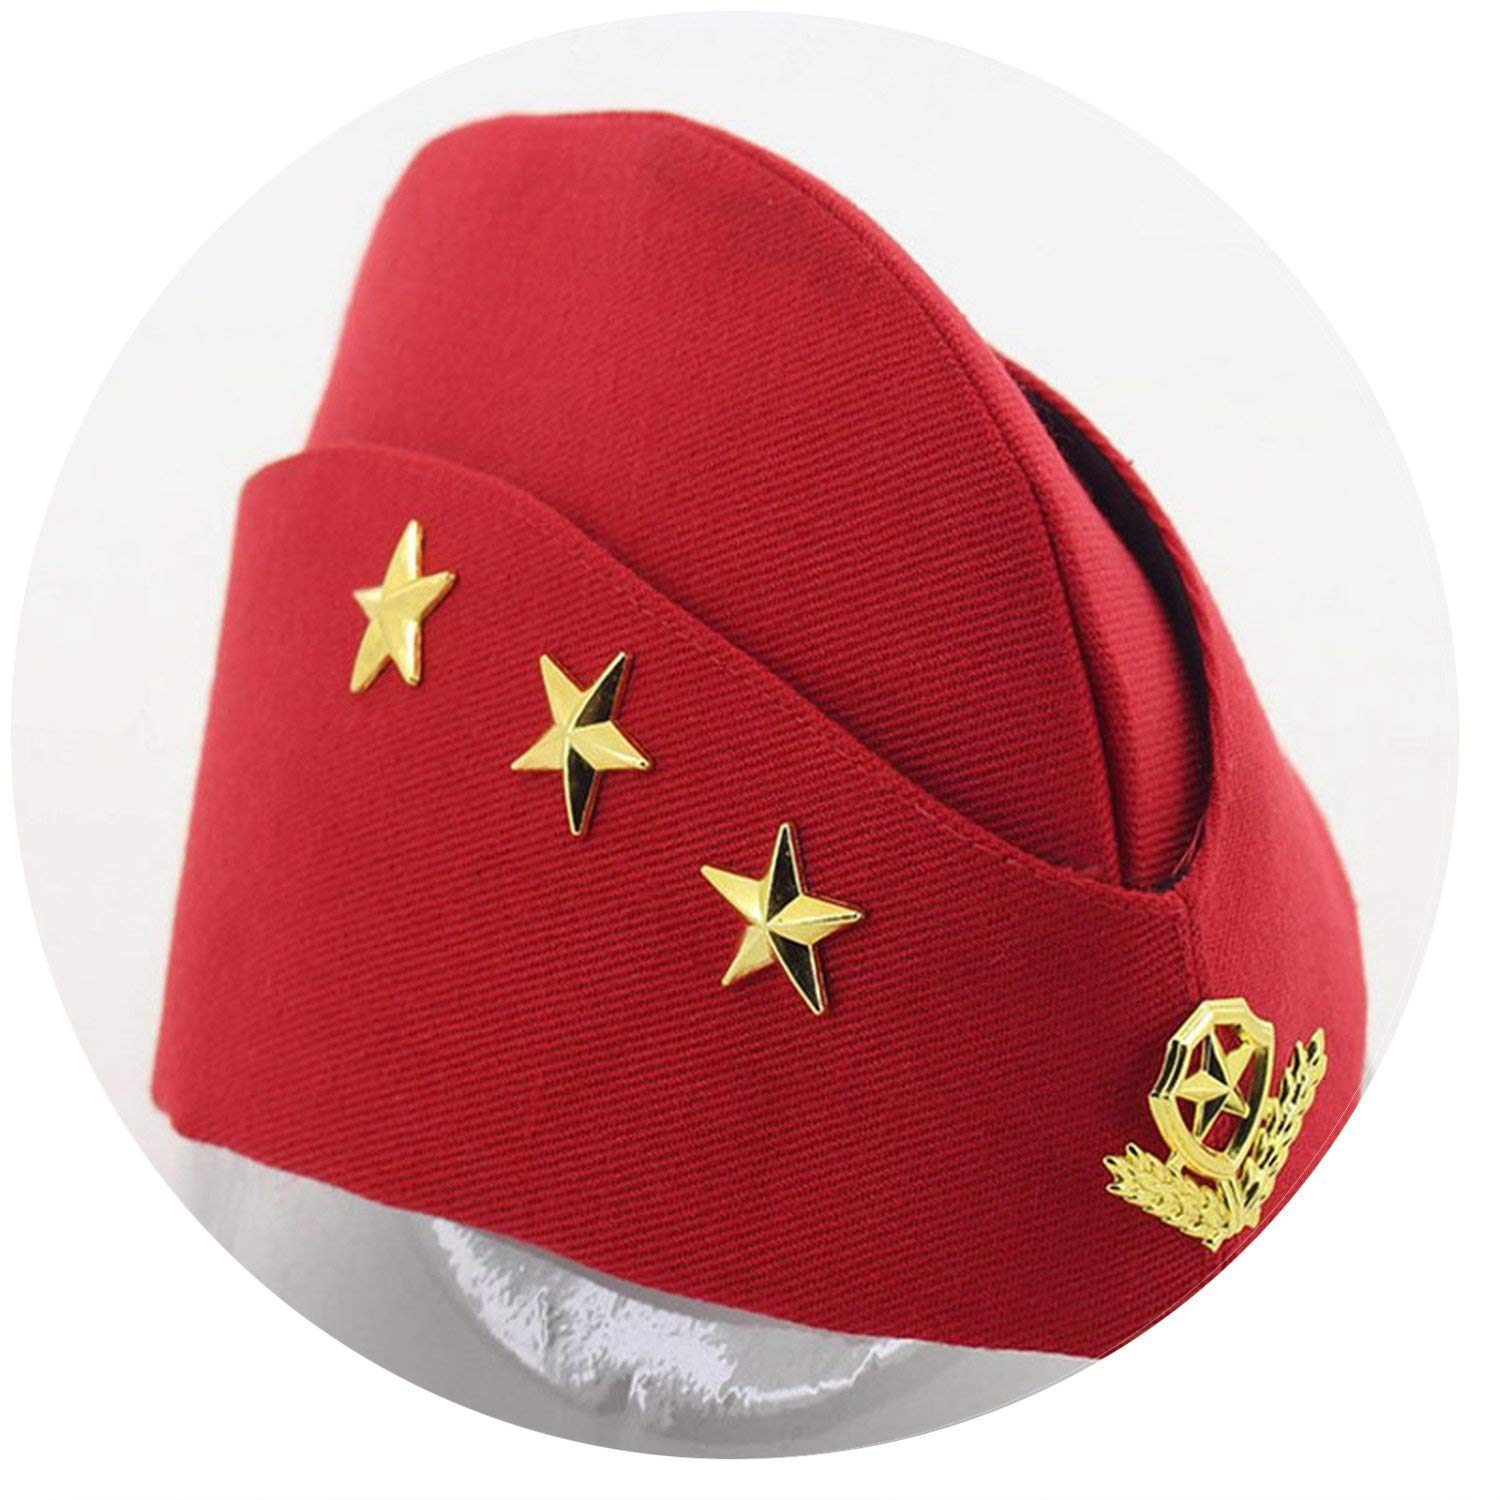 7ce8534c908 Get Quotations · Sailor Hat Square Dance Performance Canvas Boat Hat Army  Fan Stewardess Boat Hat